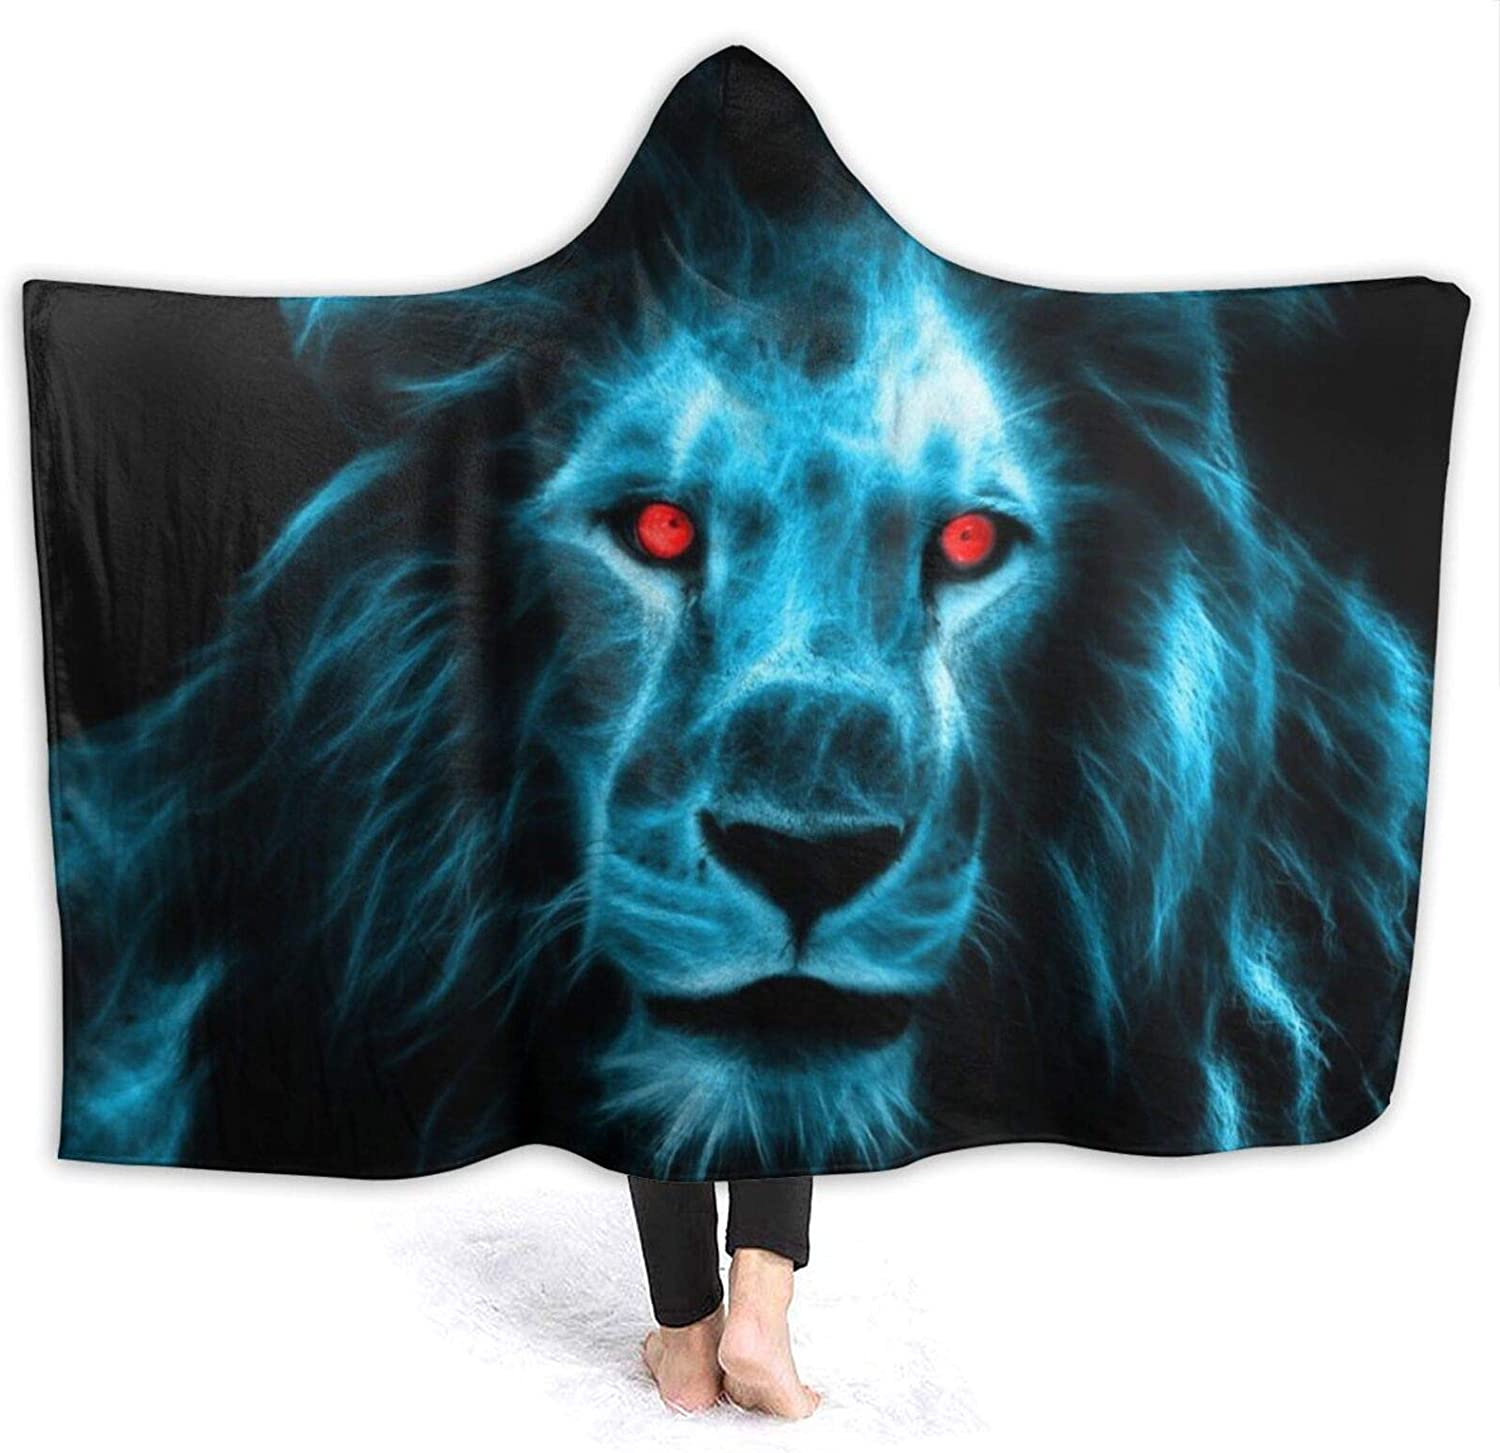 Abstract Blue Lion Hooded Air Outlet ☆ Free Shipping Blanket Throw Now on sale Conditioning